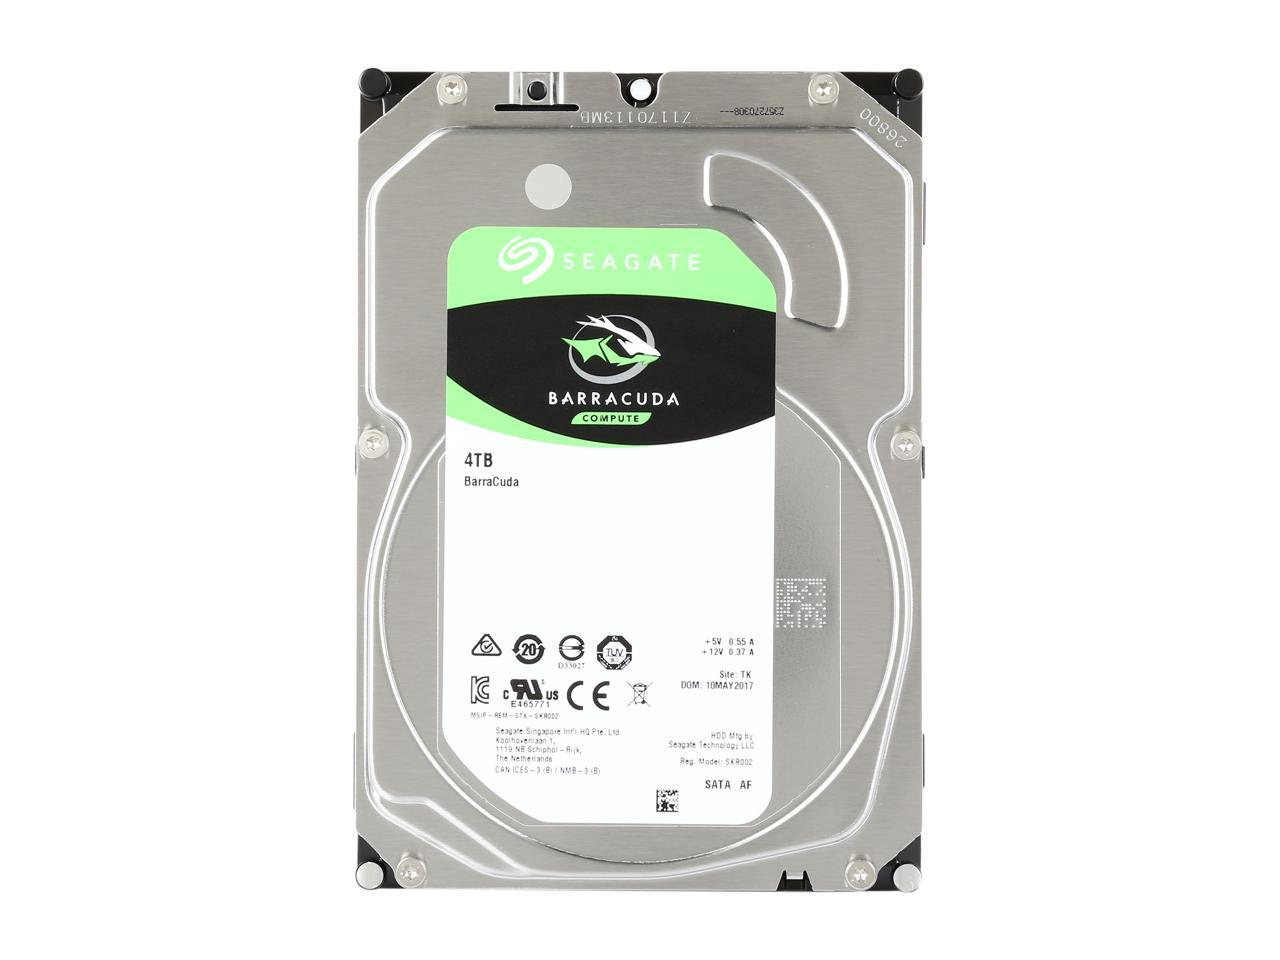 Seagate BarraCuda ST4000DM004 4TB 5400 RPM 256MB Cache SATA 6.0Gb/s 3.5""